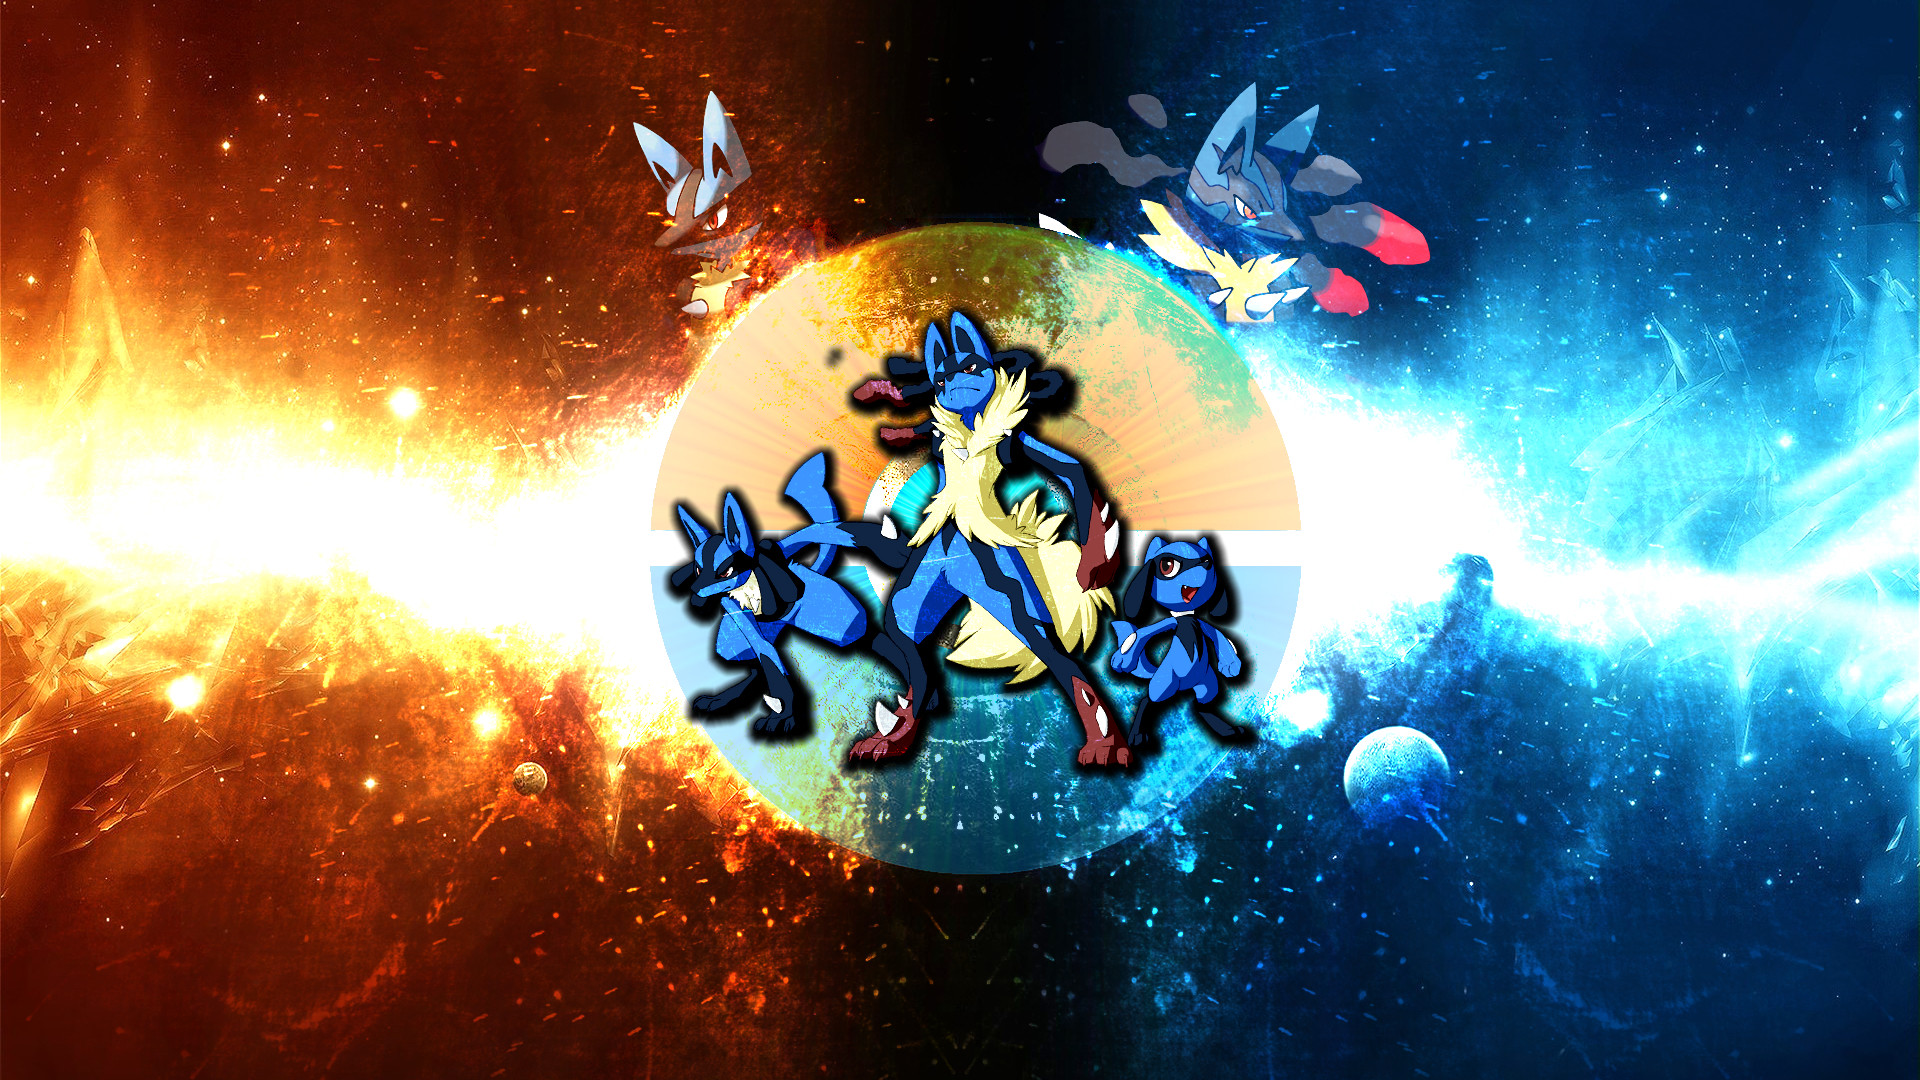 1920x1080 Pokemon Lucario Backgrounds.